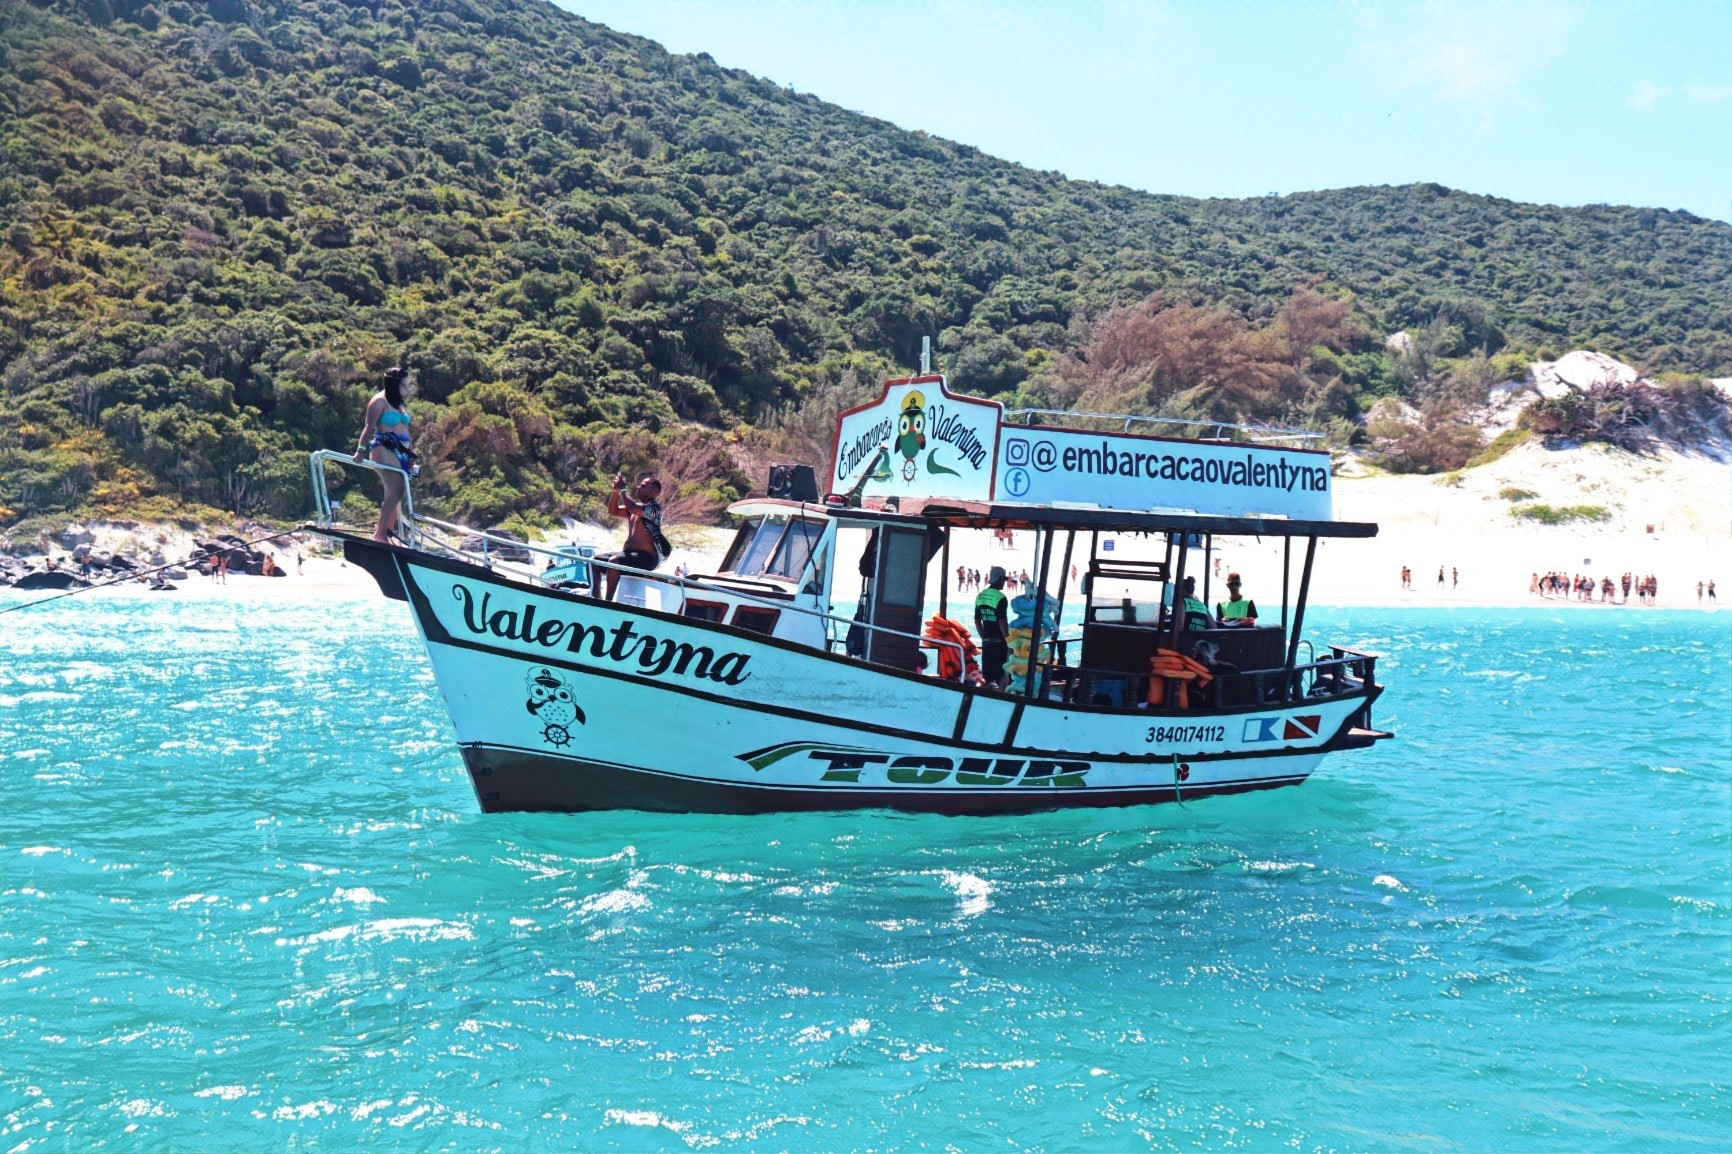 Tortuga Tur & Saveiro Don Juan Tour Reviews (Arraial do Cabo, RJ, Brazil)